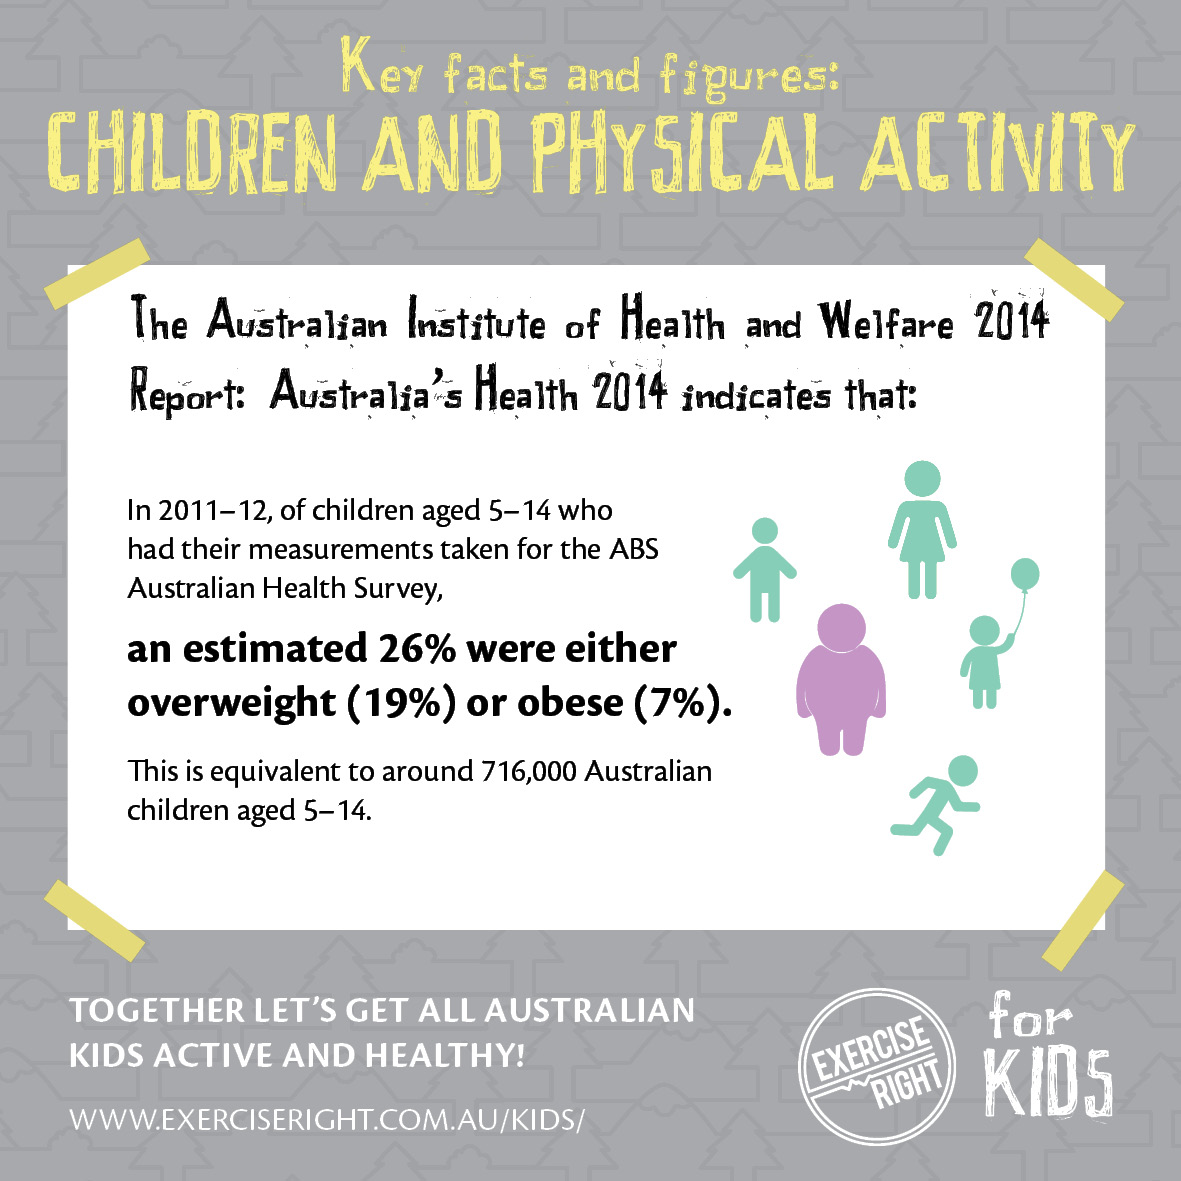 Science Facts Exercise: Exercise Right For Kids Resources